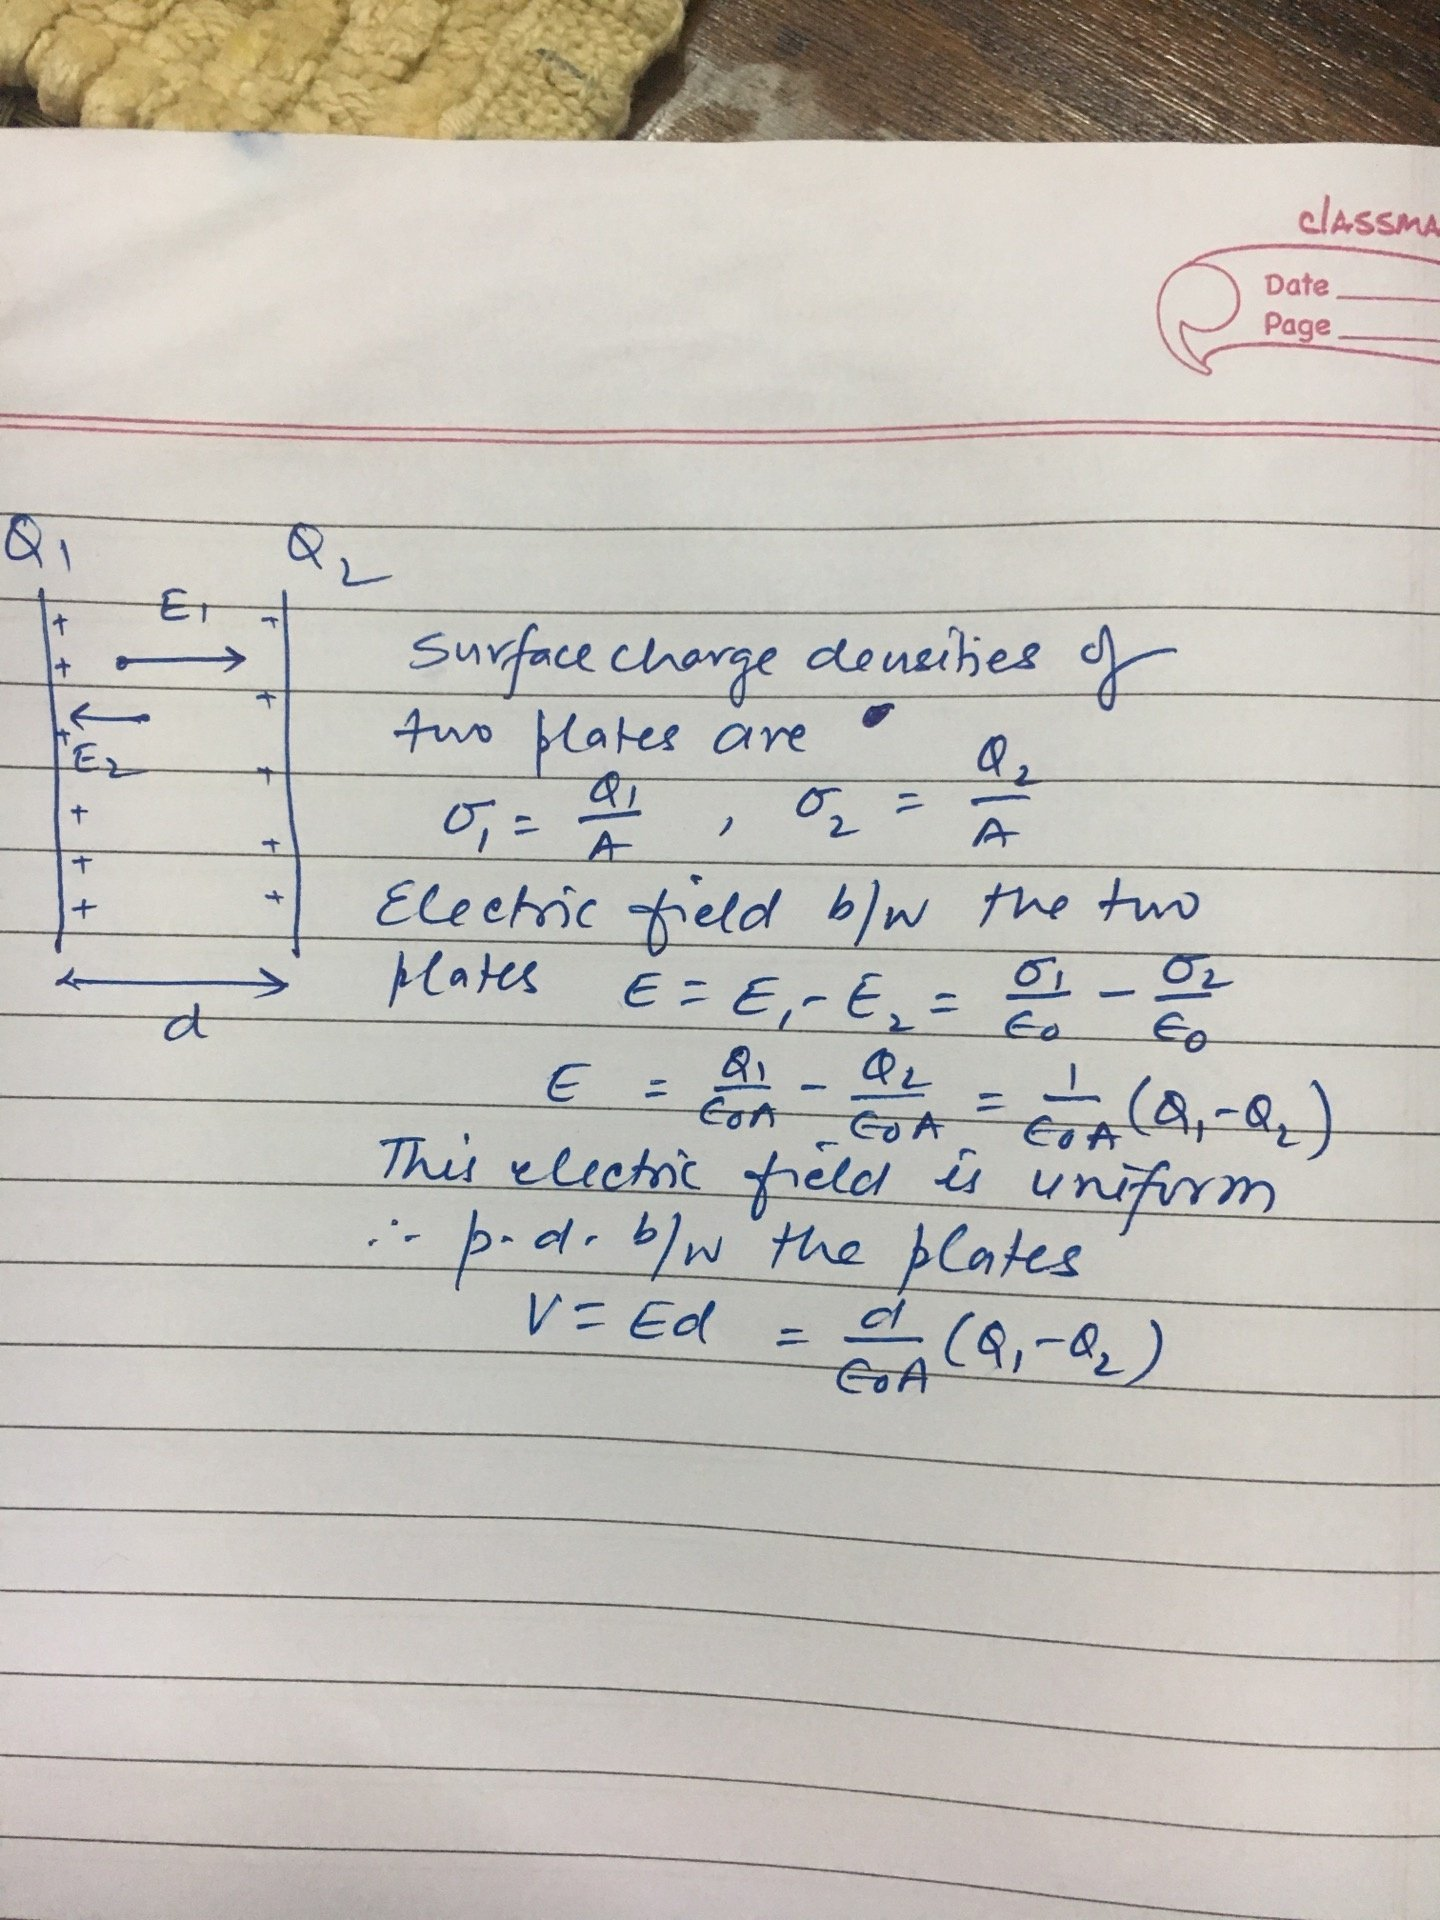 Two Identical Metal Plates Are Given Positive Charges Q1 And Q2 Wiring Capacitors In Parallel 16k Views View 5 Upvoters Answer Requested By Kashish Singh